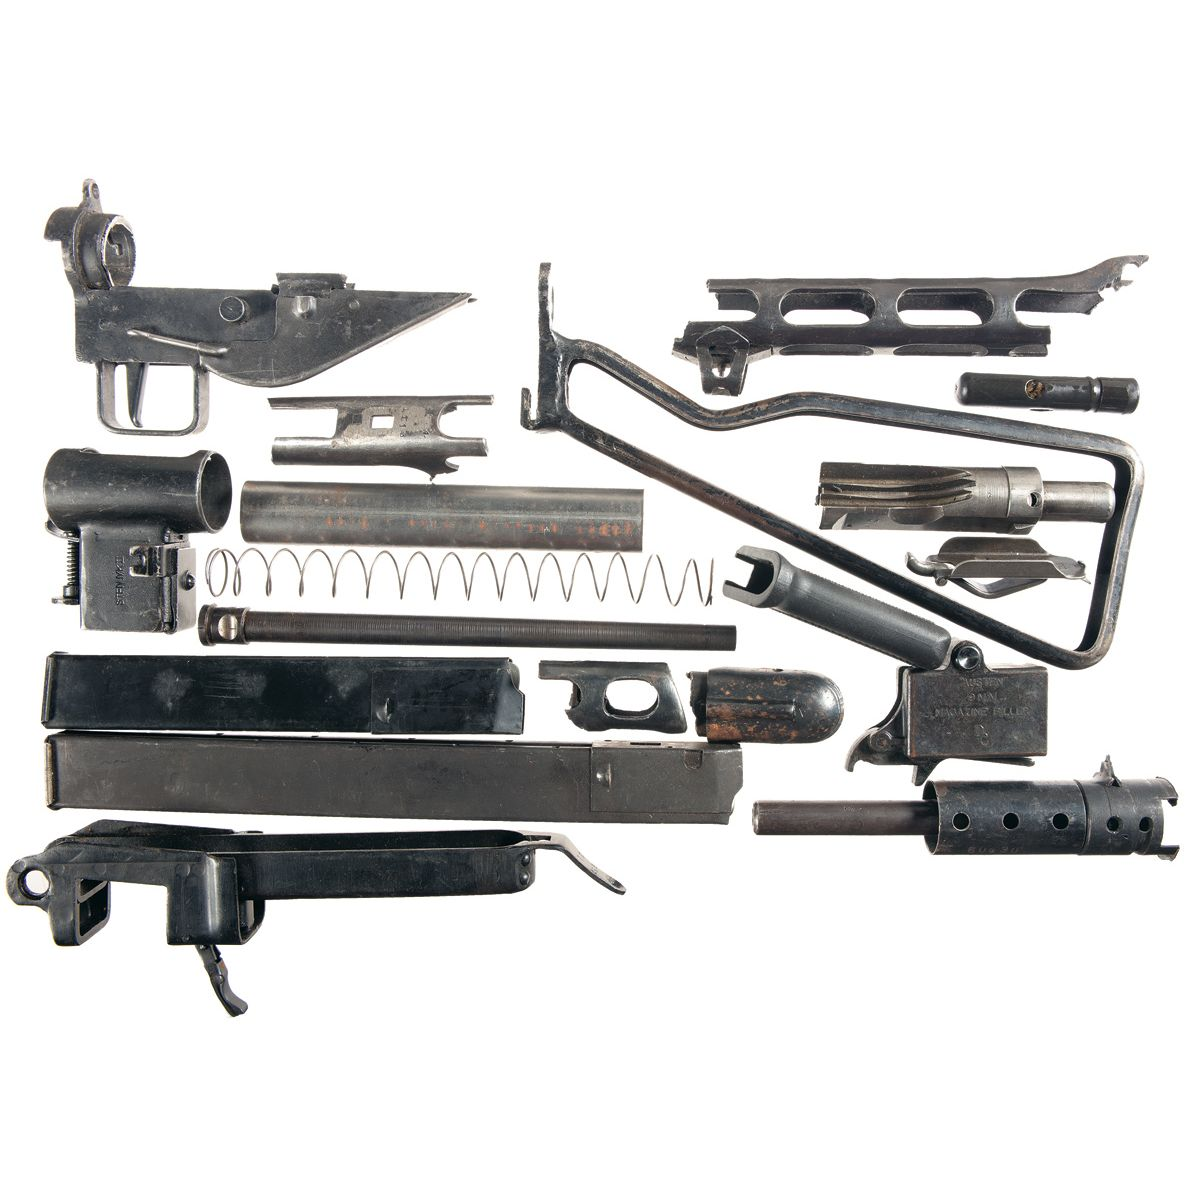 Parts for Two Submachine Gun Parts Sets -A) British Sten MK II with Manual